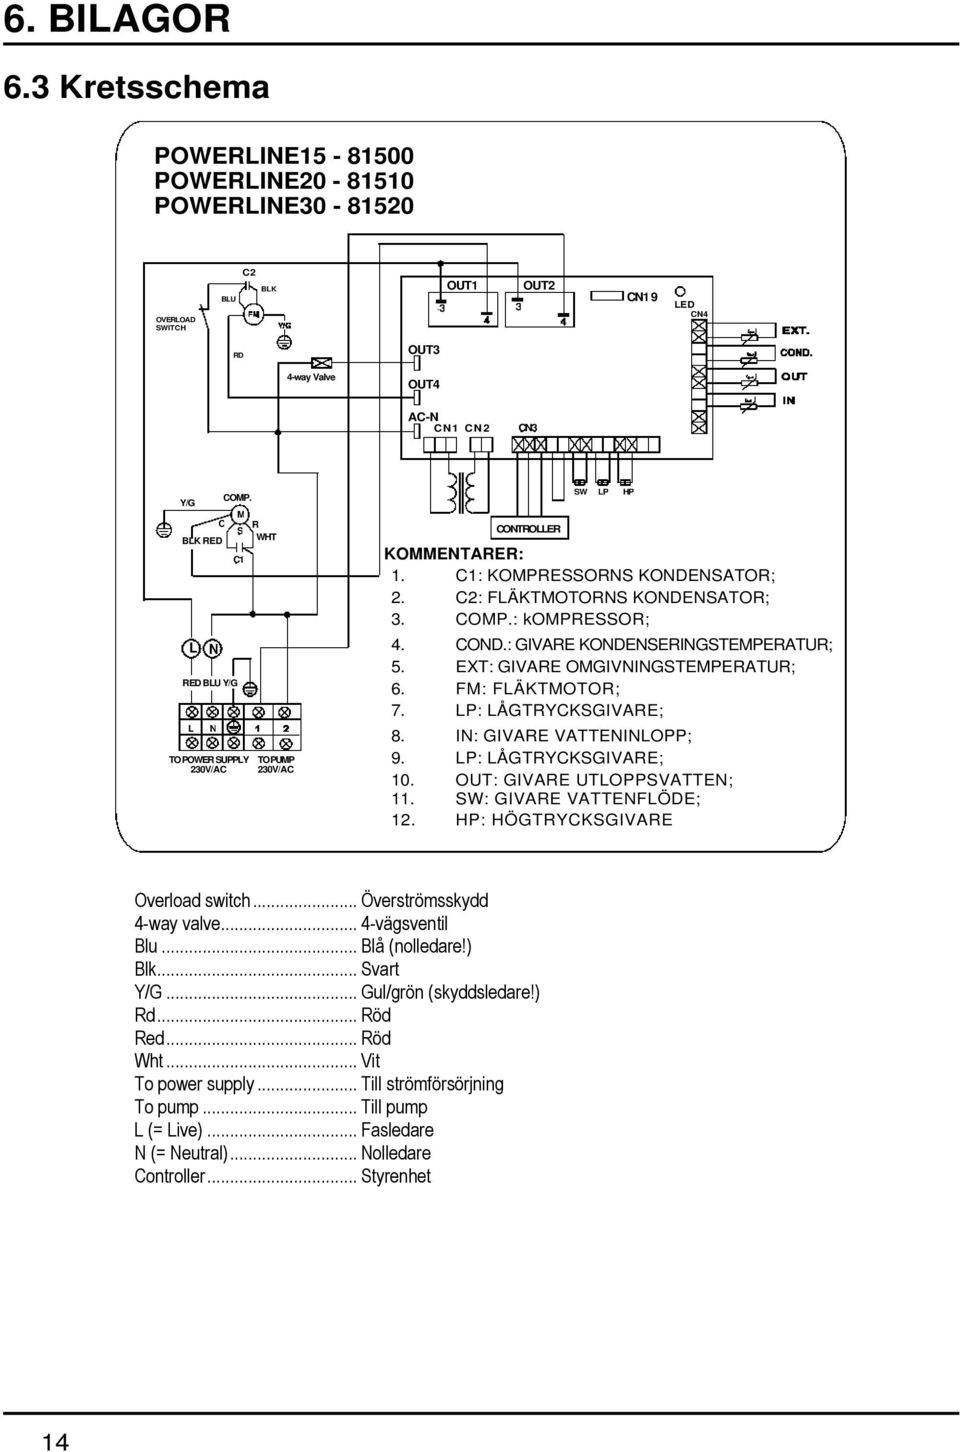 N C COMP. M S C1 TO POWER SUPPLY 230V/AC R WHT TO PUMP 230V/AC CONTROLLER SW LP HP KOMMENTARER: 1. C1: KOMPRESSORNS KONDENSATOR; 2. C2: FLÄKTMOTORNS KONDENSATOR; 3. COMP.: kompressor; 4. COND.